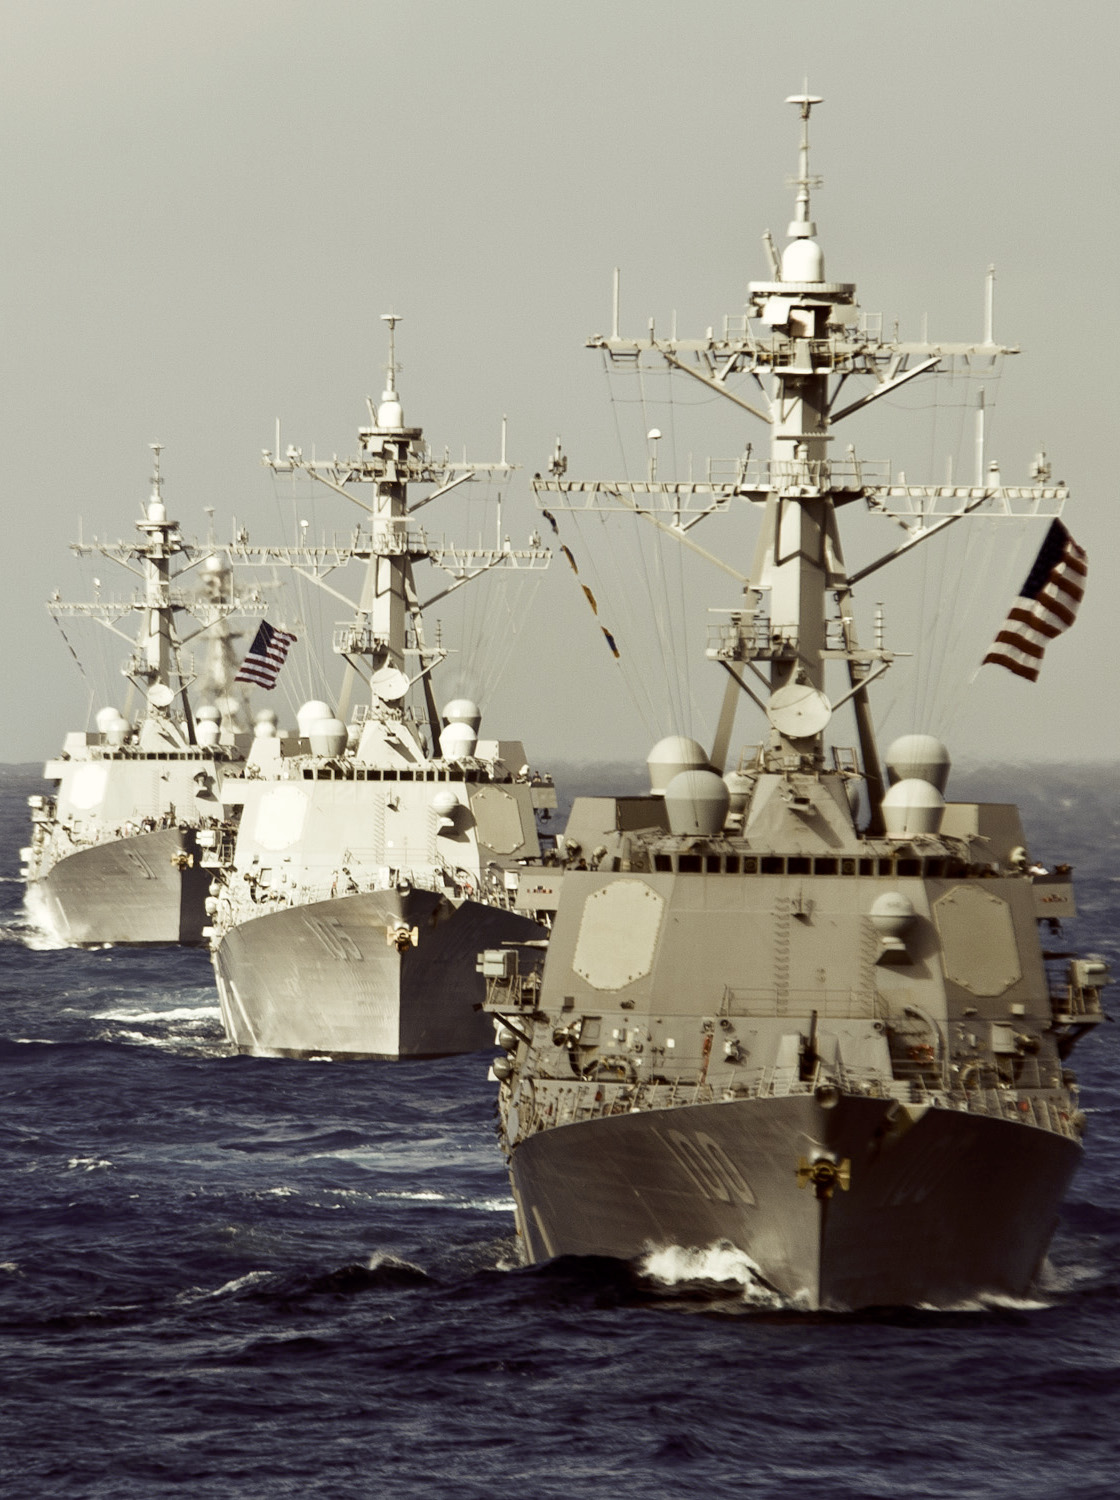 Cuban Missile Crisis - USS Dewey et al Color CROP NEW.jpg